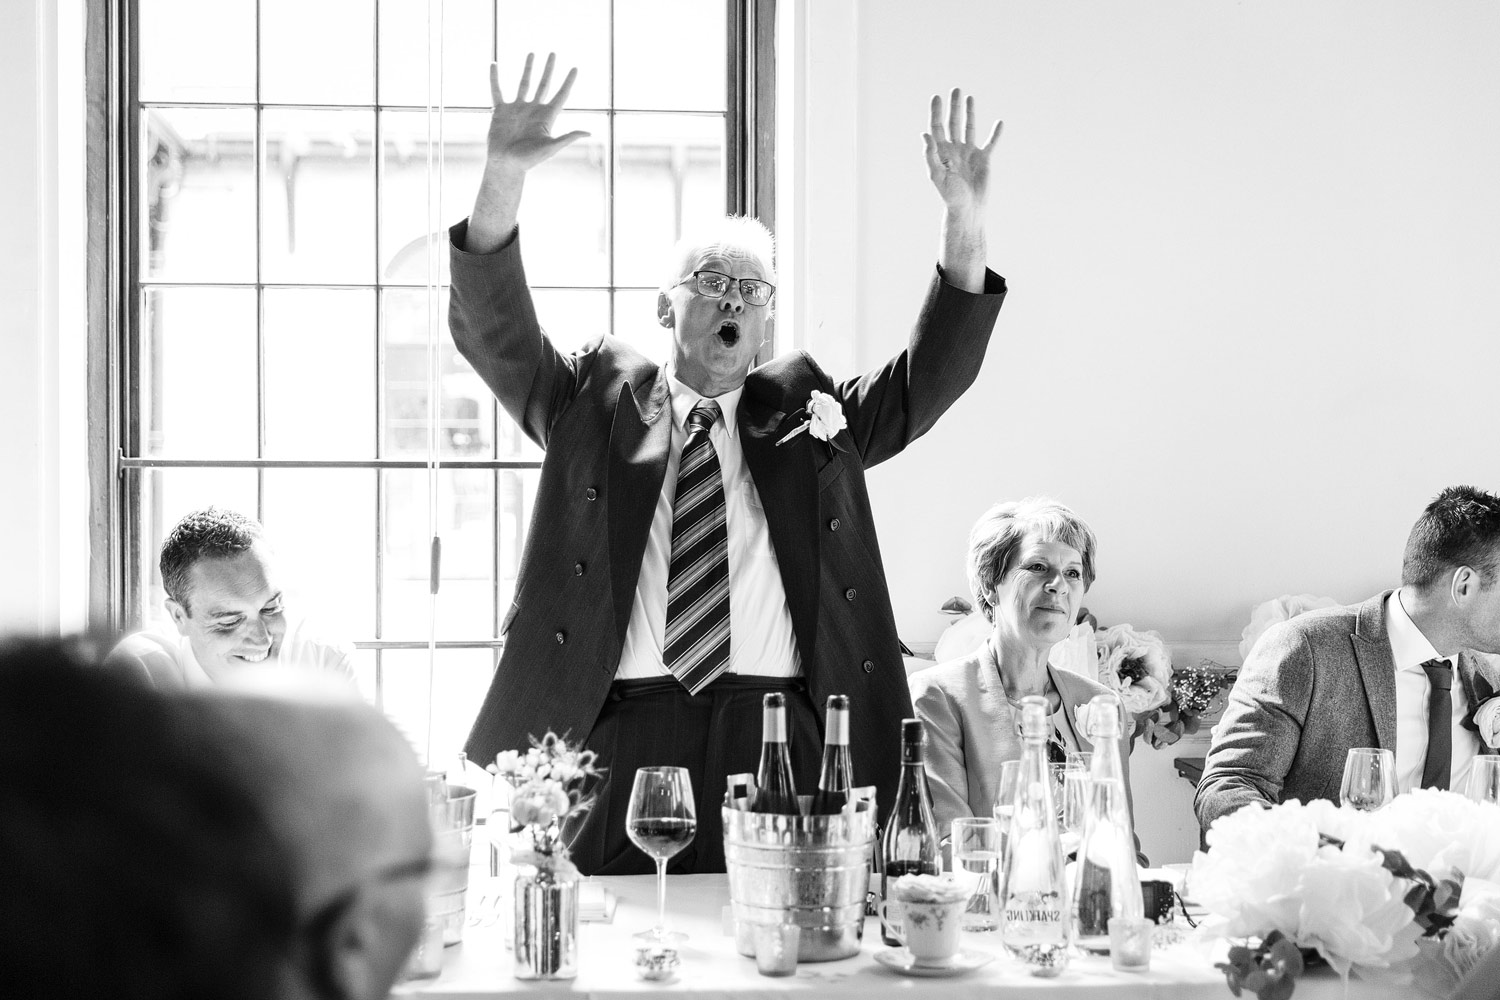 Father of the groom stands up and dances during speeches at a wedding at The Brewery in Moorgate - London wedding photographer